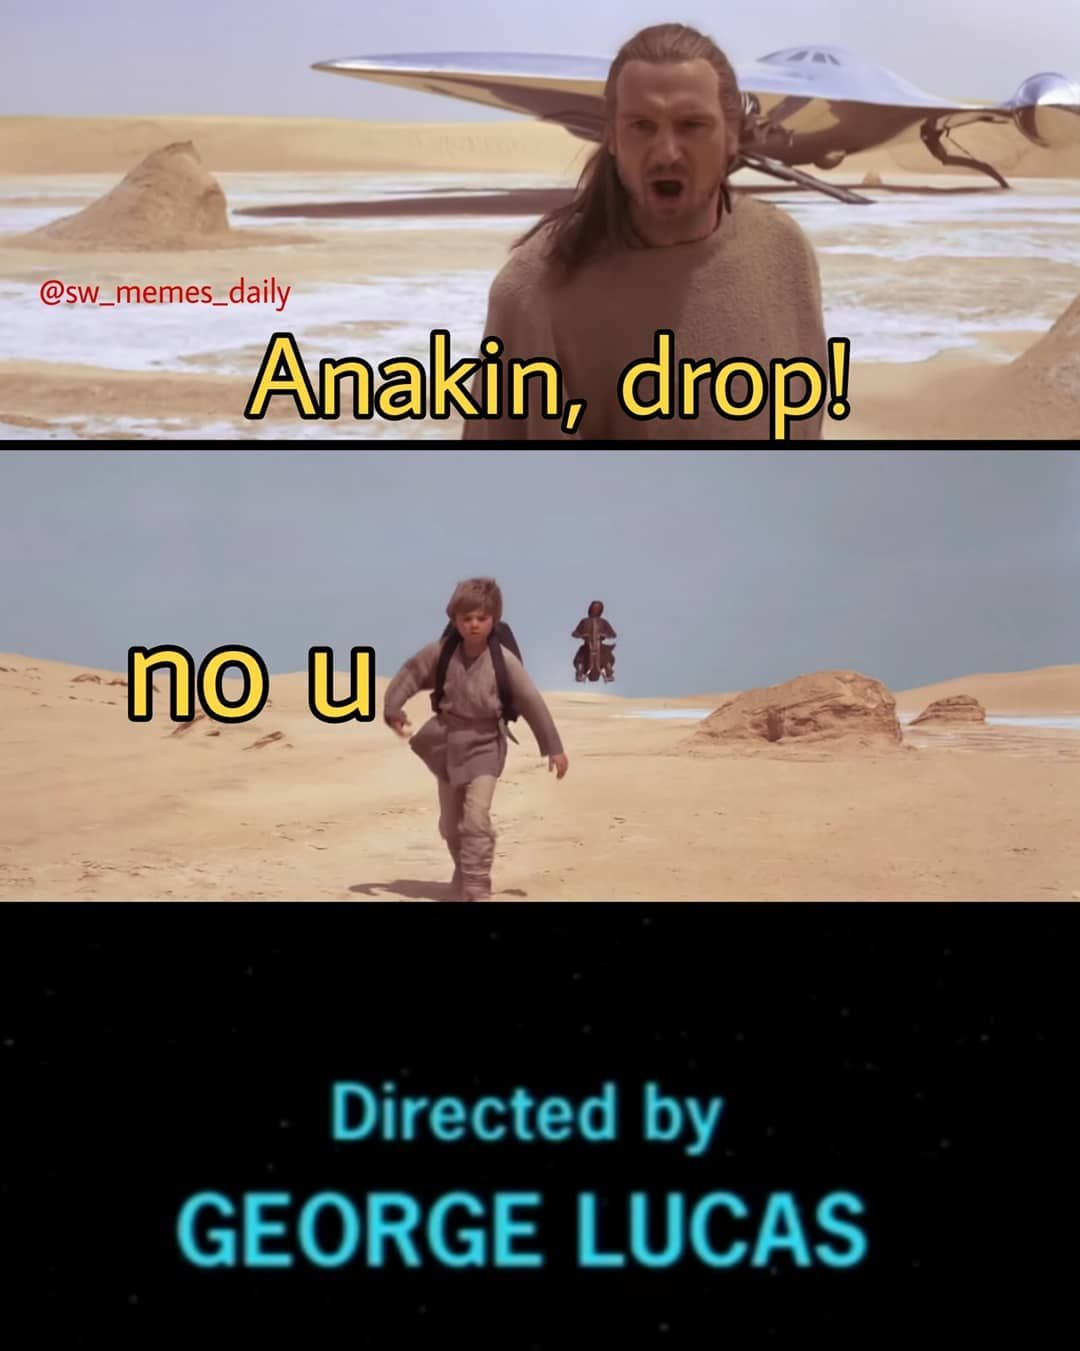 No You Star Wars Memes Selfmade 100 Dank Unfunny On The Jedi Council In The Rank Of A Master Hellothere Generalkenobi Prequel Memes Memes Star Wars Memes